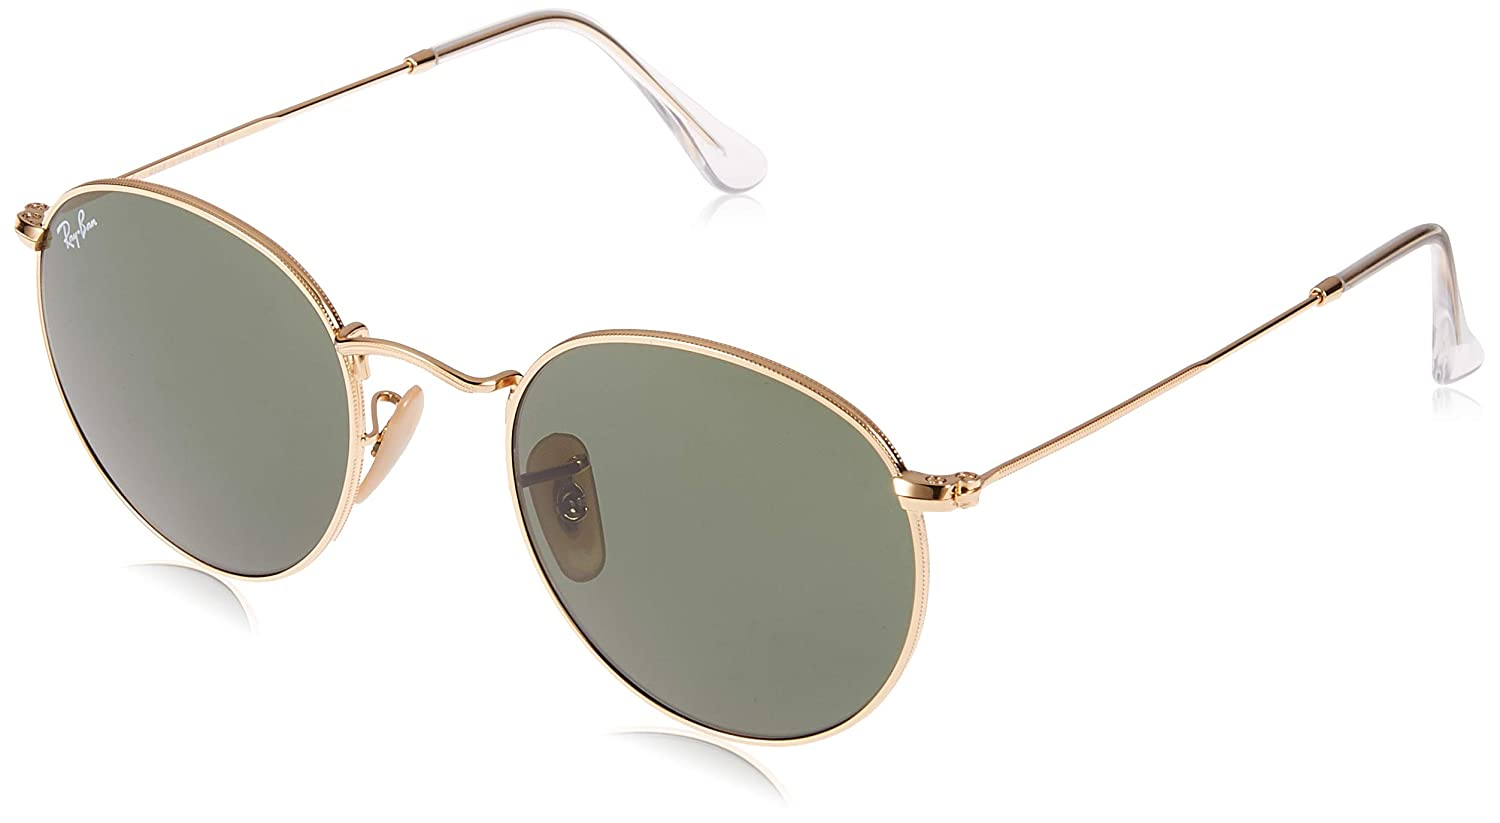 dff09b522 Ray-Ban 3447 001 Gold 3447 Round Sunglasses Driving Lens Category 4 Size  50: Ray-Ban: Amazon.ca: Shoes & Handbags